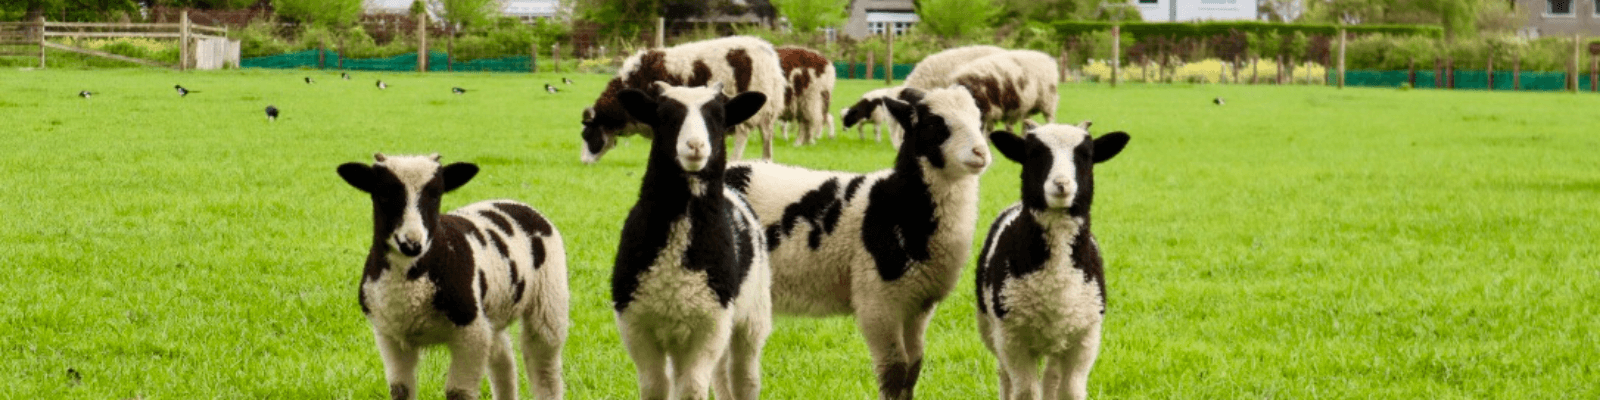 https://www.airfield.ie/wp-content/uploads/2021/03/Jacob-Lambs-at-Airfield-Estate-1.png